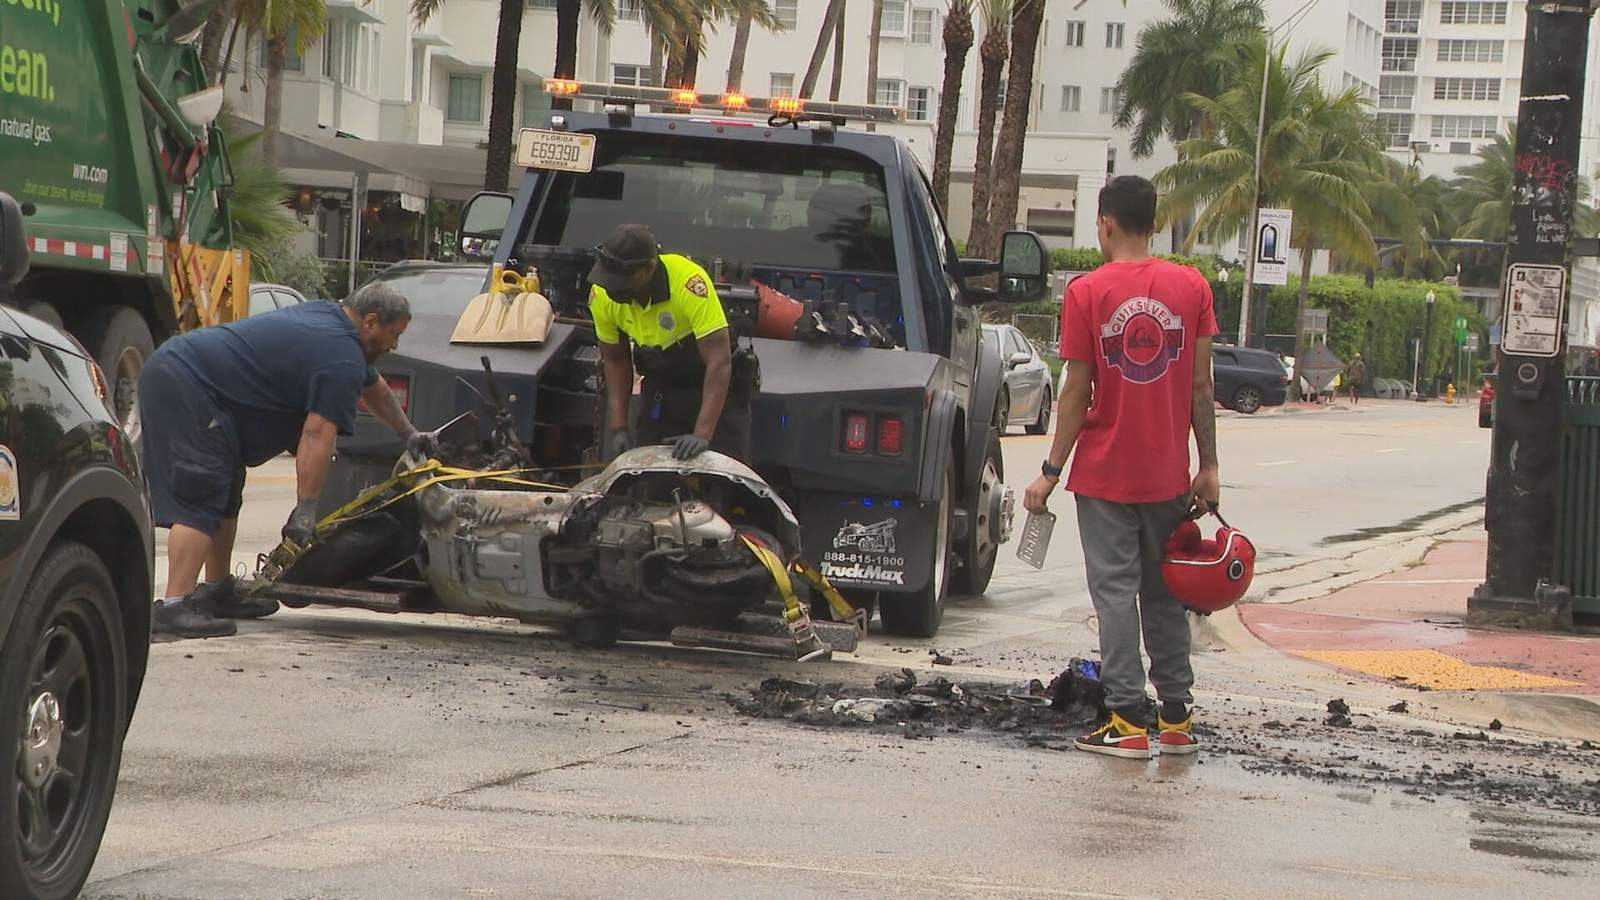 Juan Patano, right, holds on to his helmet as a Miami Beach police officer and a tow truck driver deal with his scooter after a crash on Wednesday in Miami Beach.